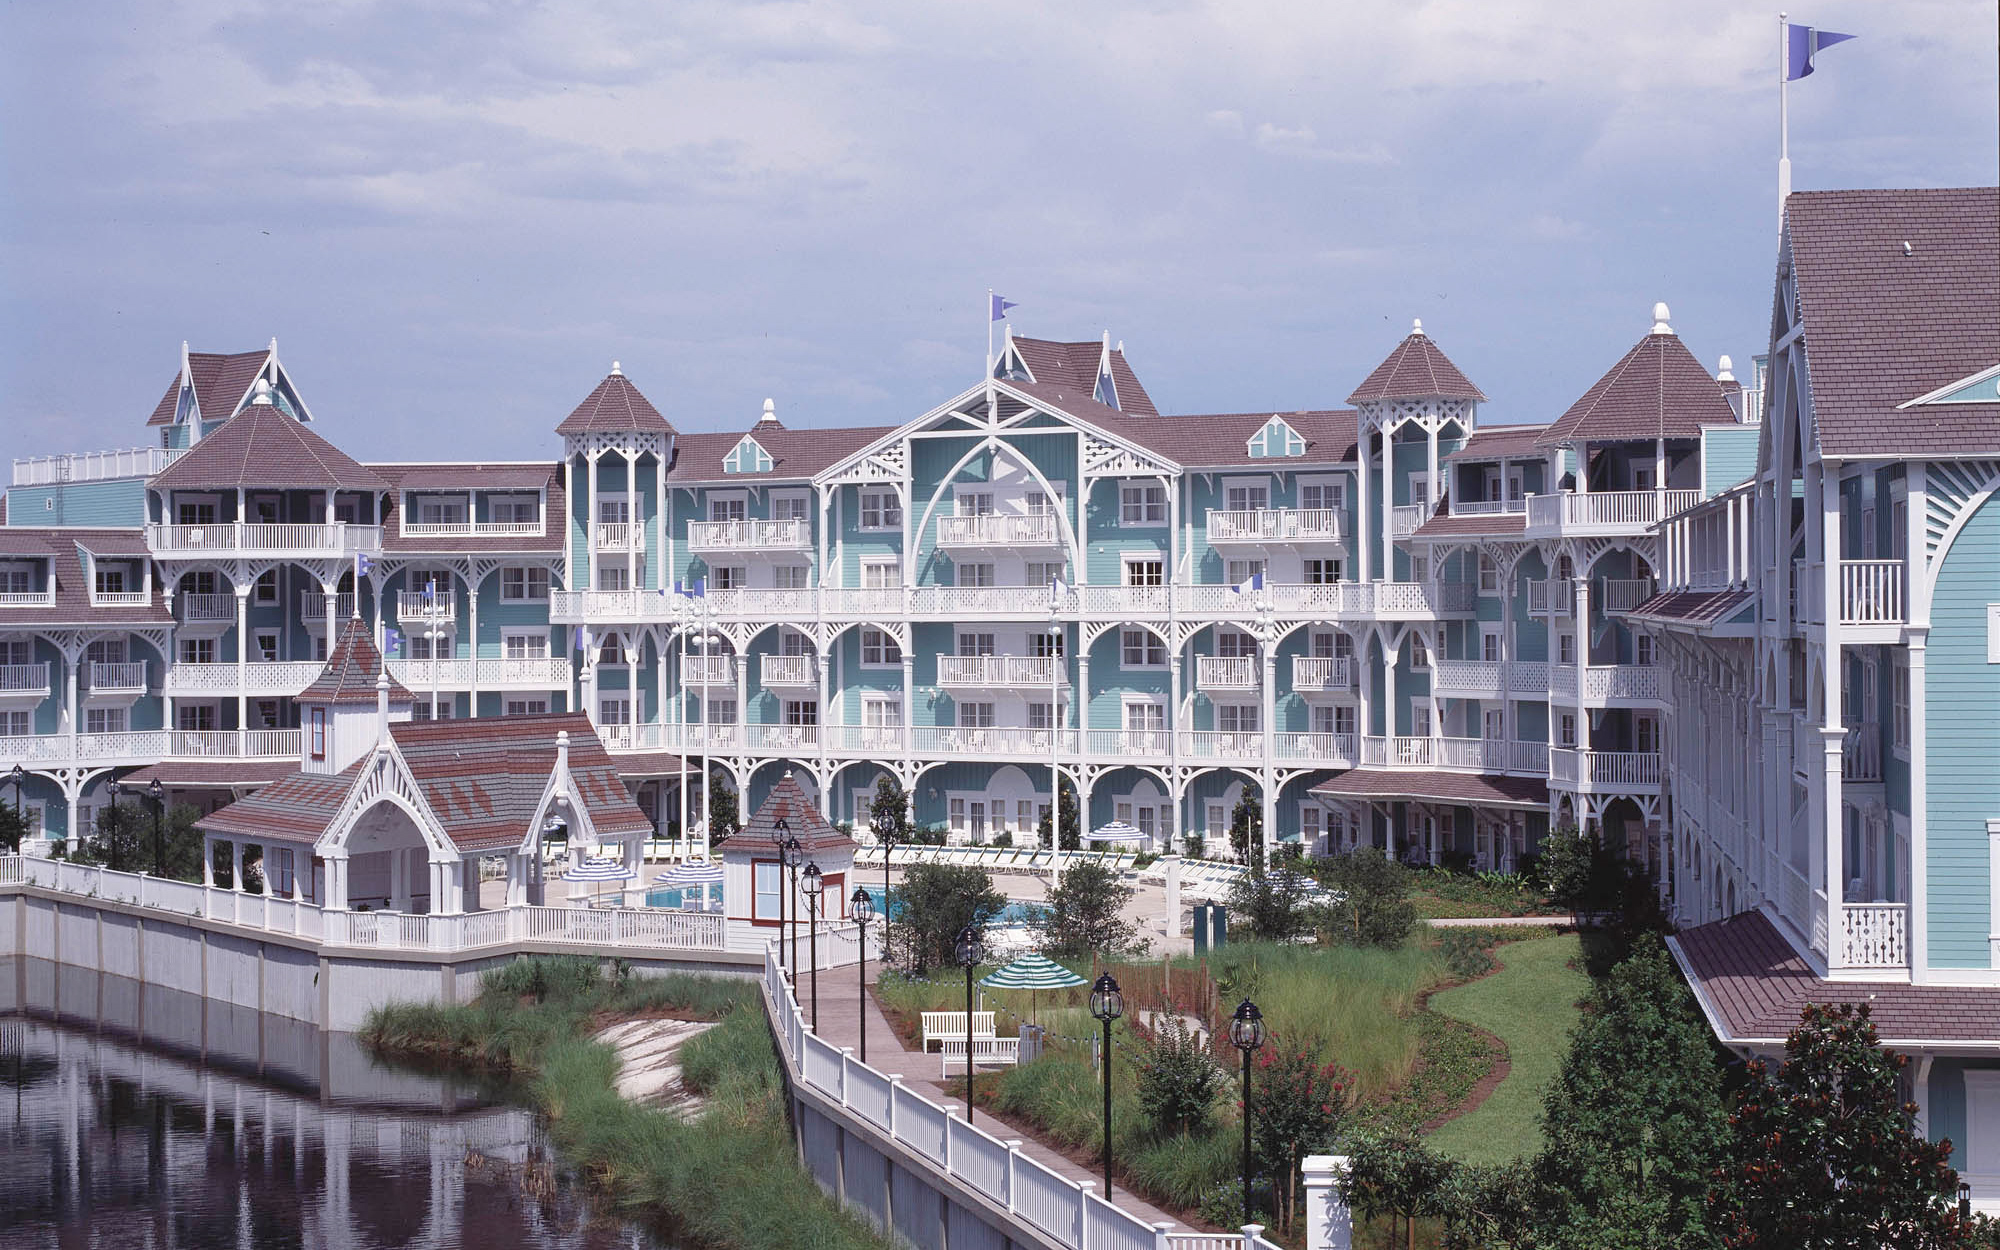 Best Family Beach Hotels: No. 8 Disney's Beach Club Resort, Lake Buena Vista, FL